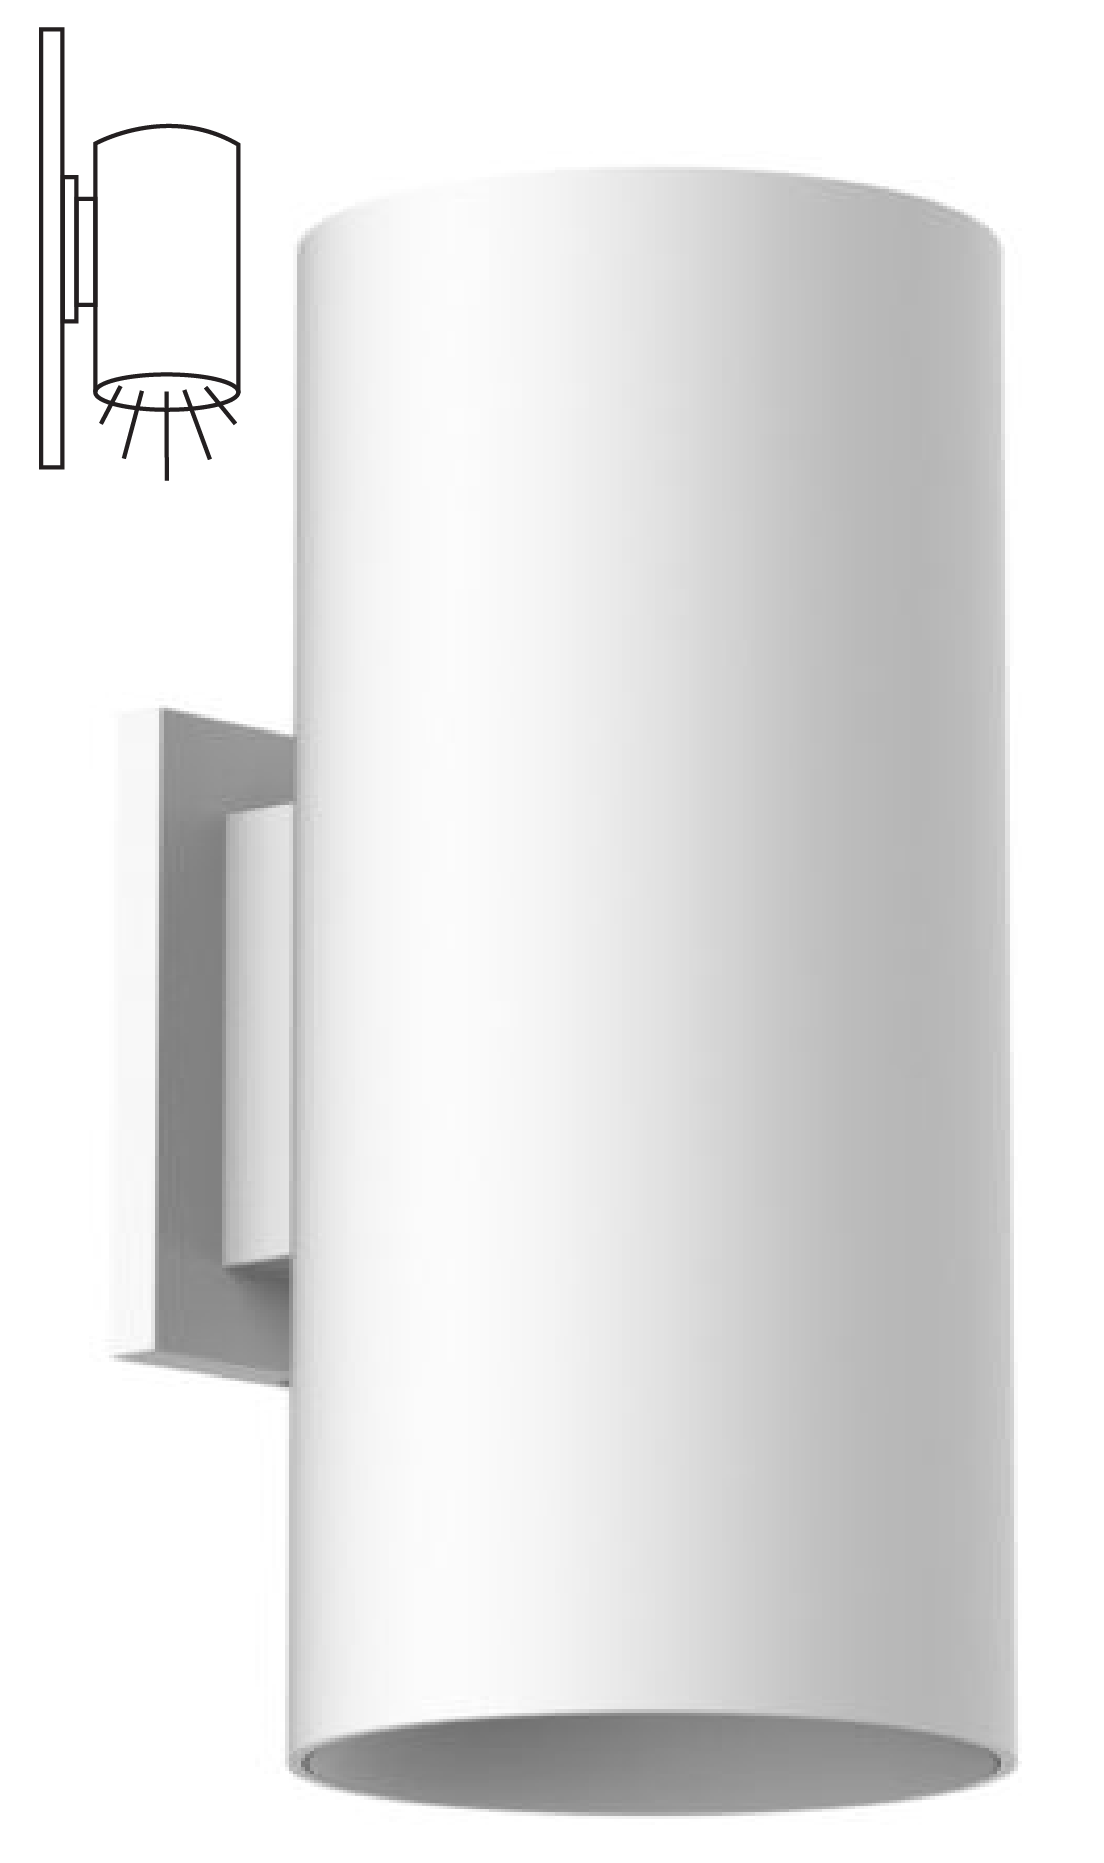 Alcon Lighting 11237 W Cilindro Ii Architectural Led Medium Modern Cylinder Wall Mount Direct Light Fixture